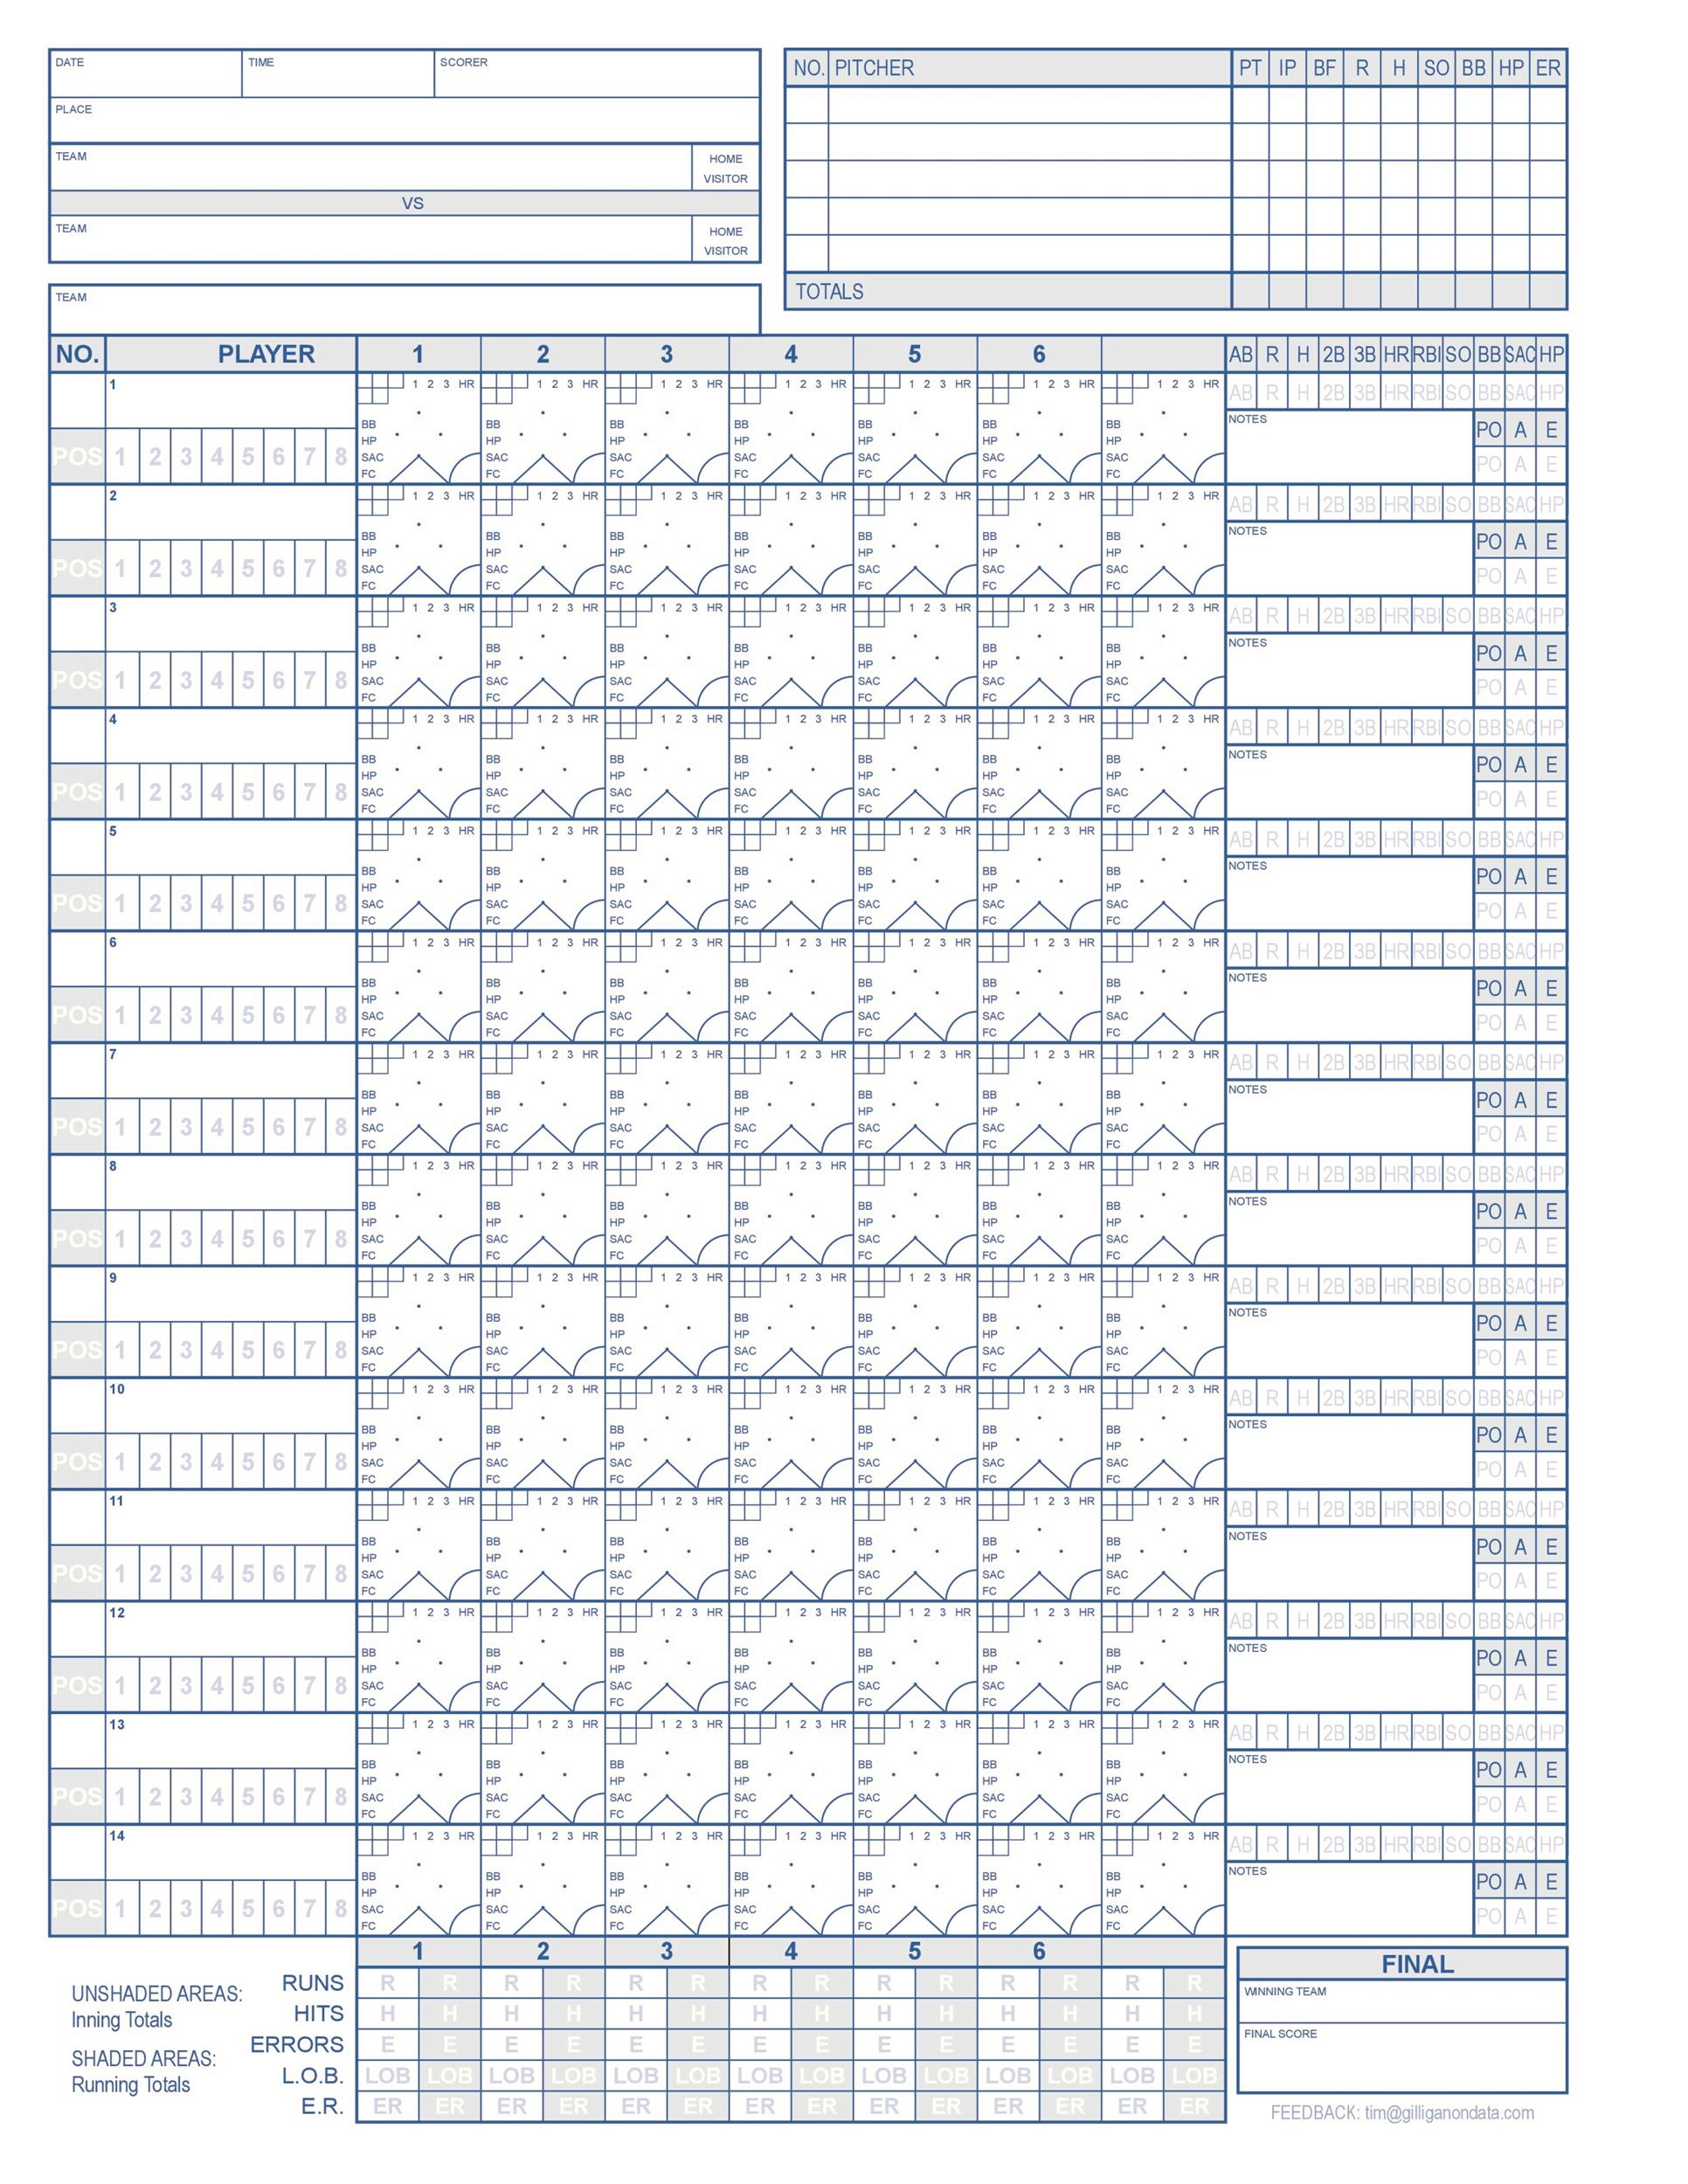 Fan image in printable softball scorebook